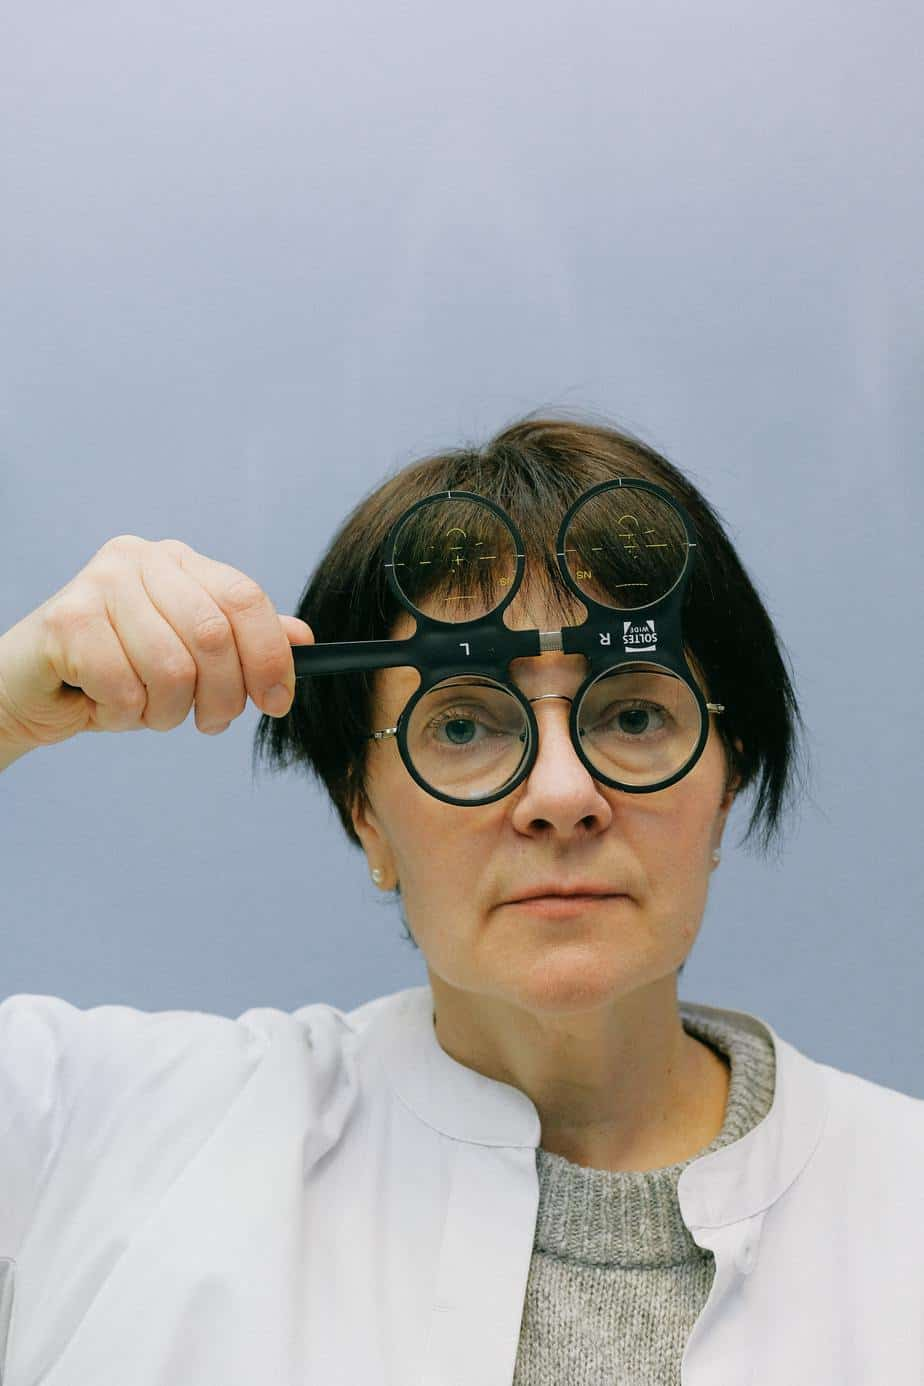 Lady with a spectacle magnifying glass